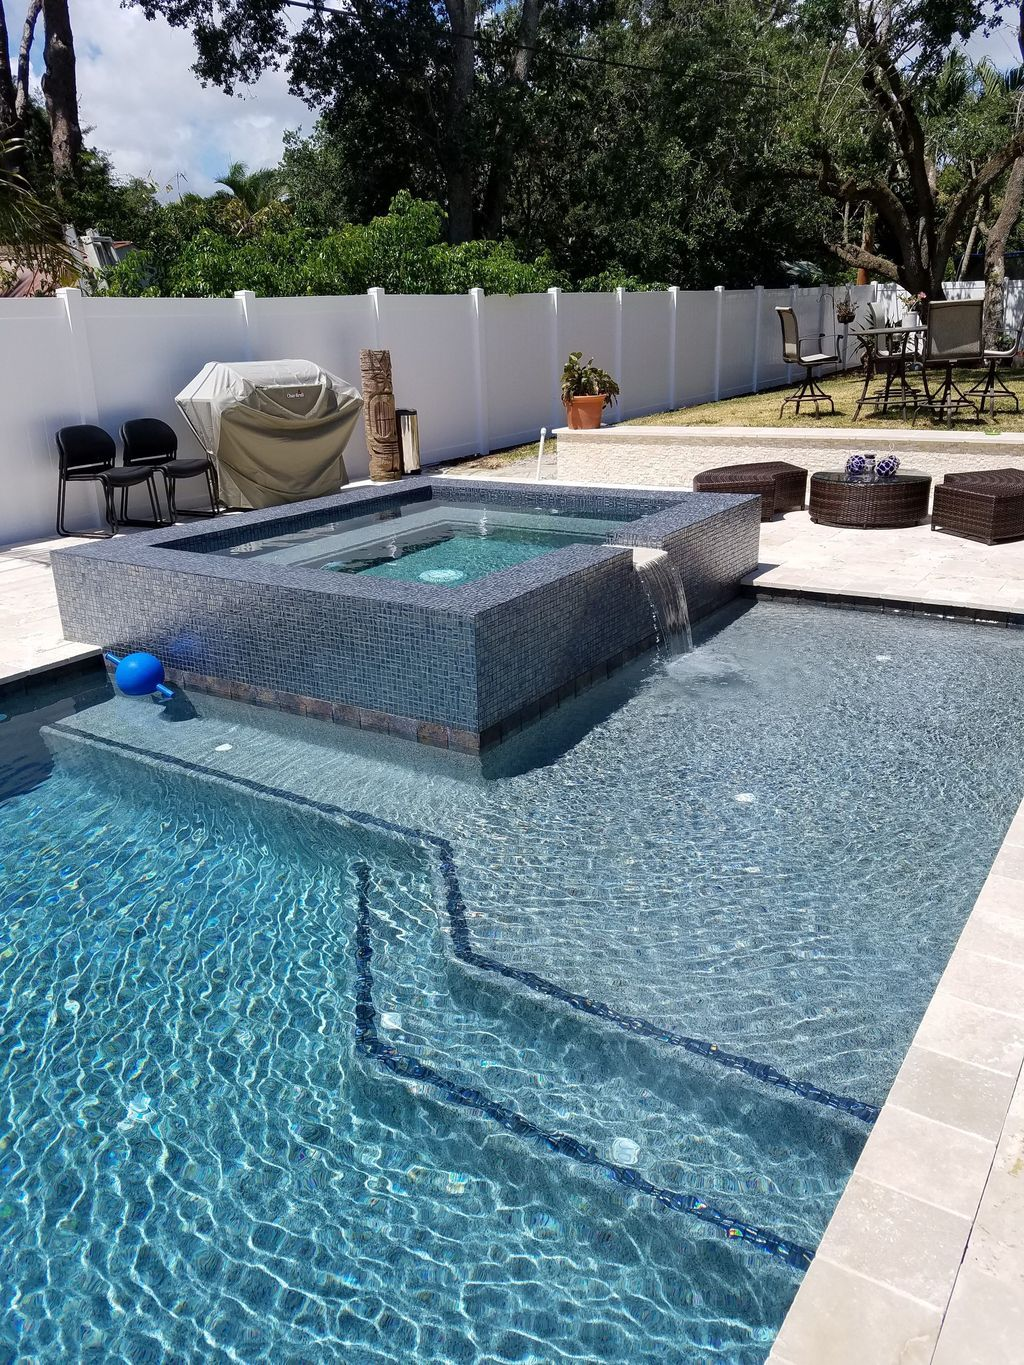 20 Luxurious Pool Design Ideas For Your Home Trenduhome Modern Pool And Spa Luxury Swimming Pools Custom Swimming Pool